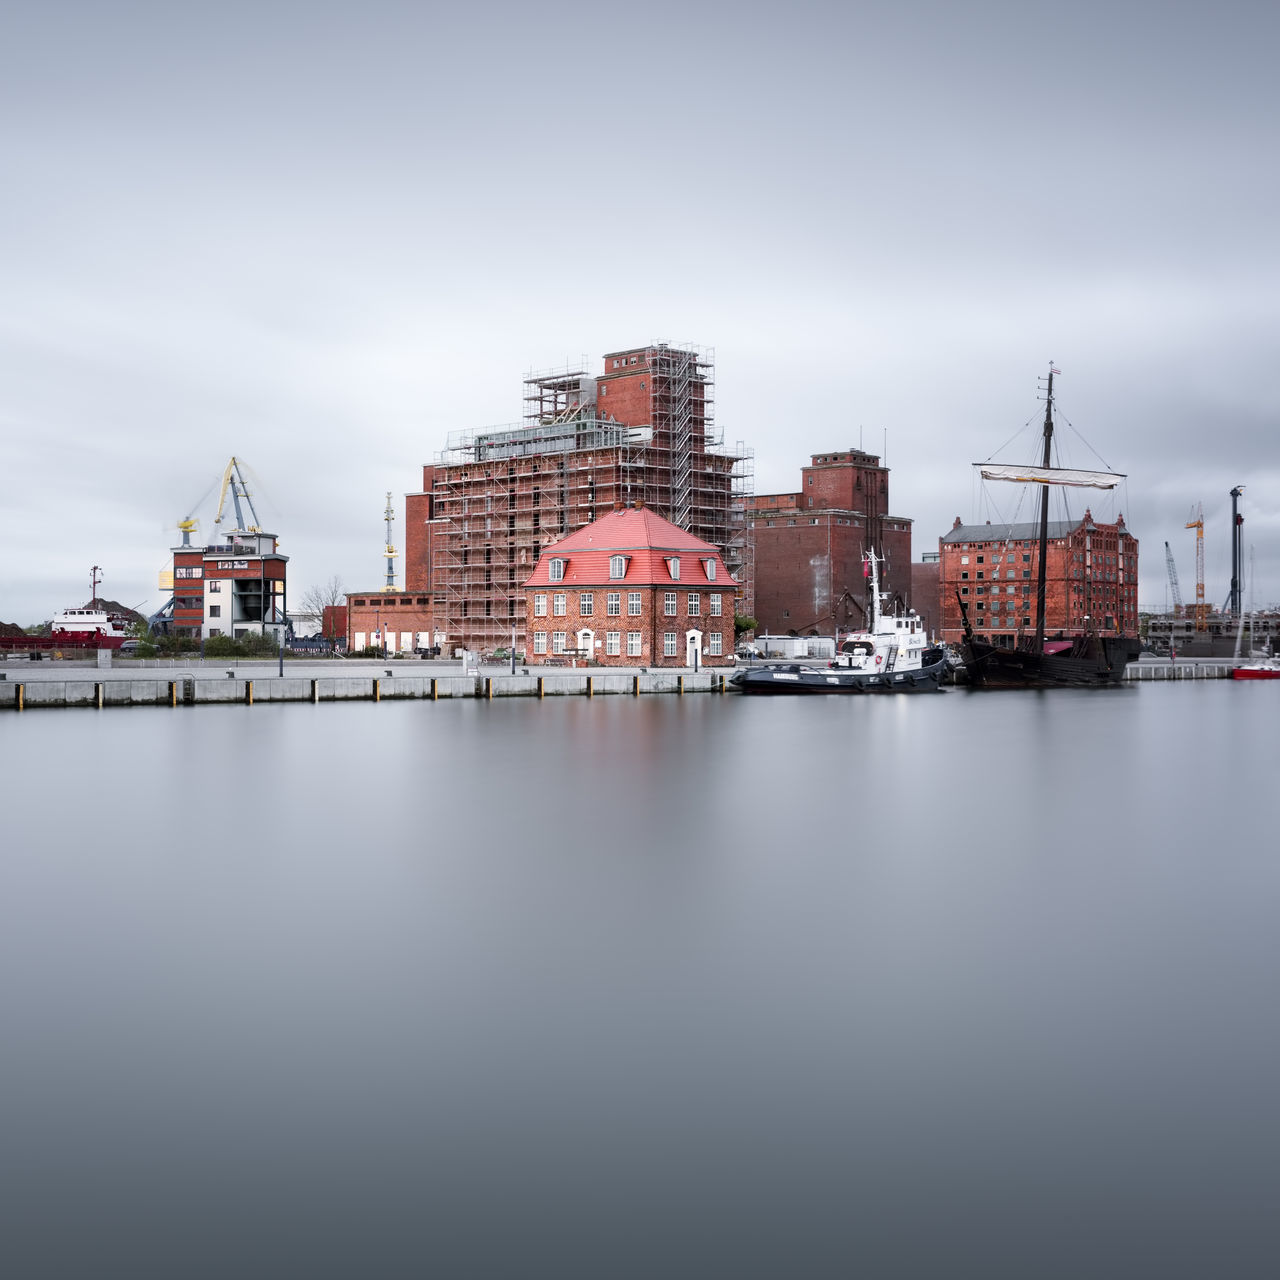 wismar harbor against clear sky Architecture Baltic Sea Building Exterior Built Structure City Cityscape Day Fine Art Harbor View Long Exposure Mecklenburg-Vorpommern Muted Colors No People Ocean Outdoors Philipp Dase Reflection Sky Urban Skyline Water Wismar Wismar Harbor Wismarhafen